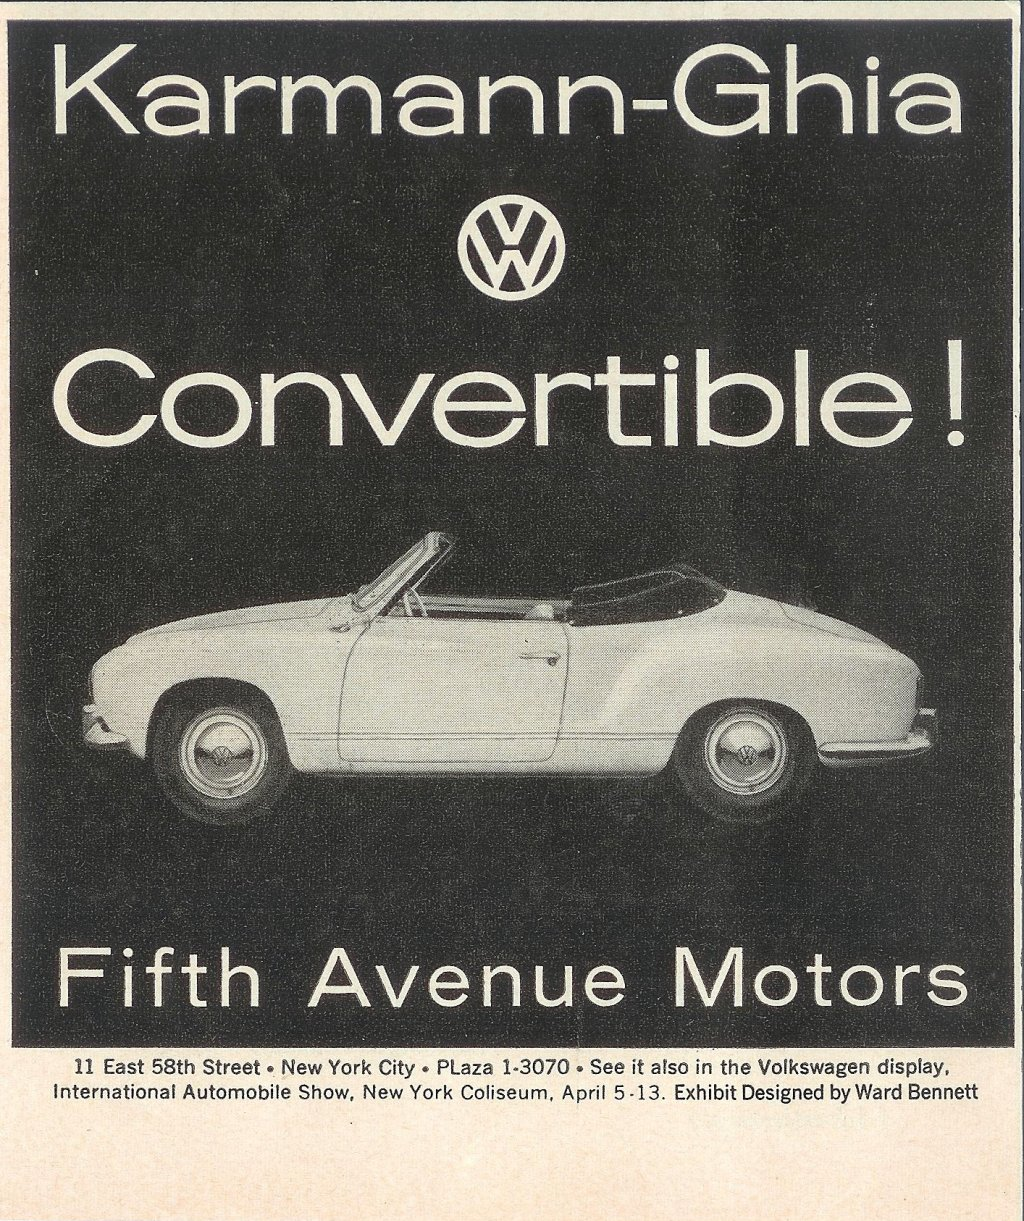 Ghia advertisement from early 1958